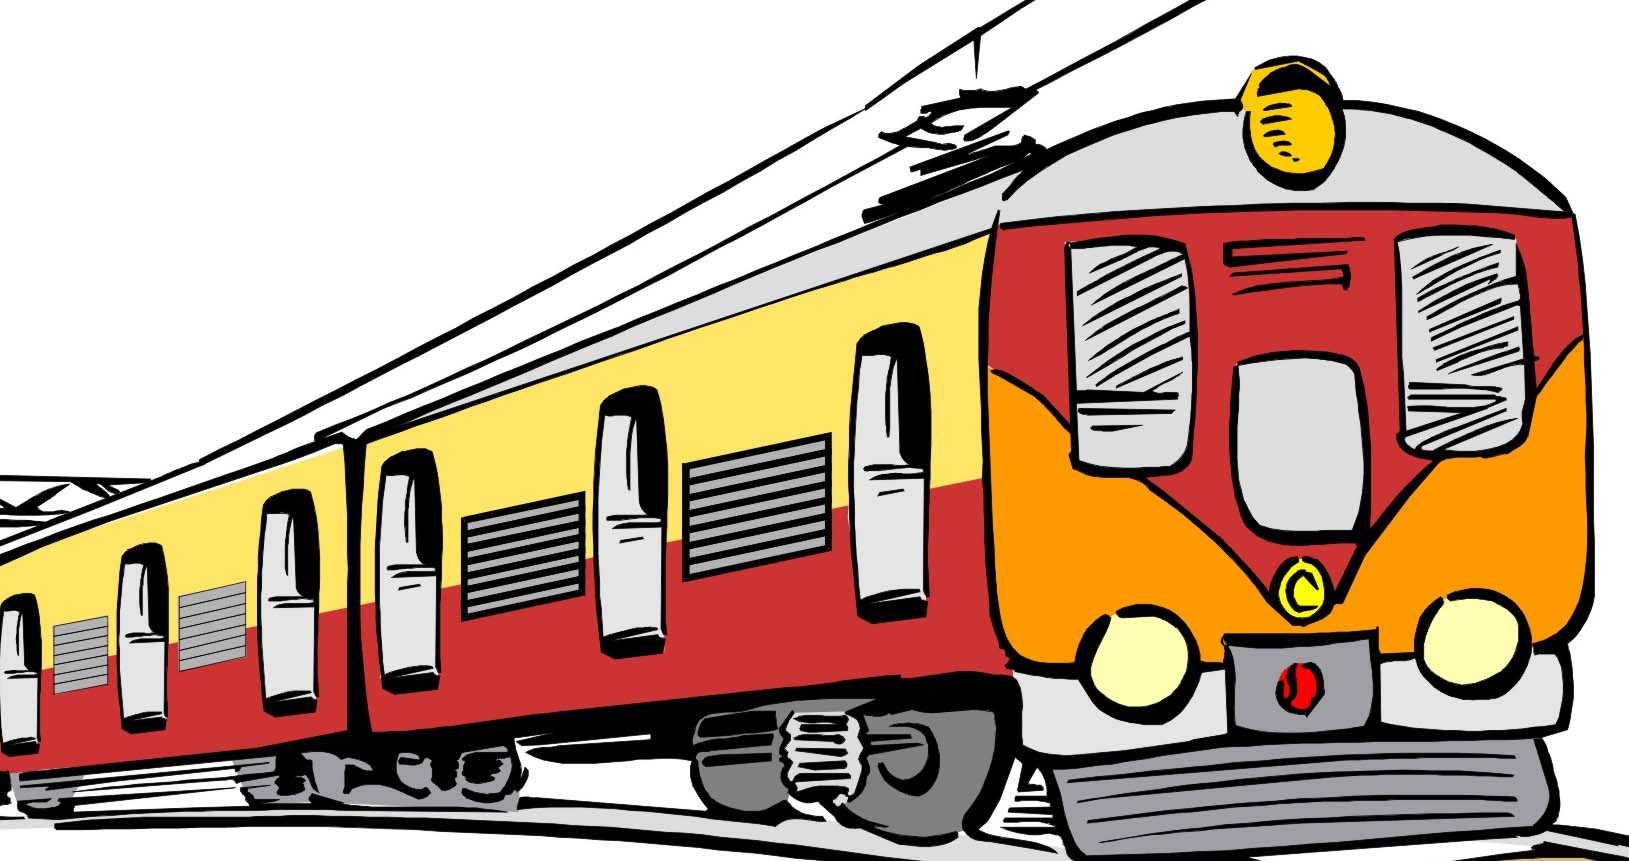 Train Car Clipart at GetDrawings.com.